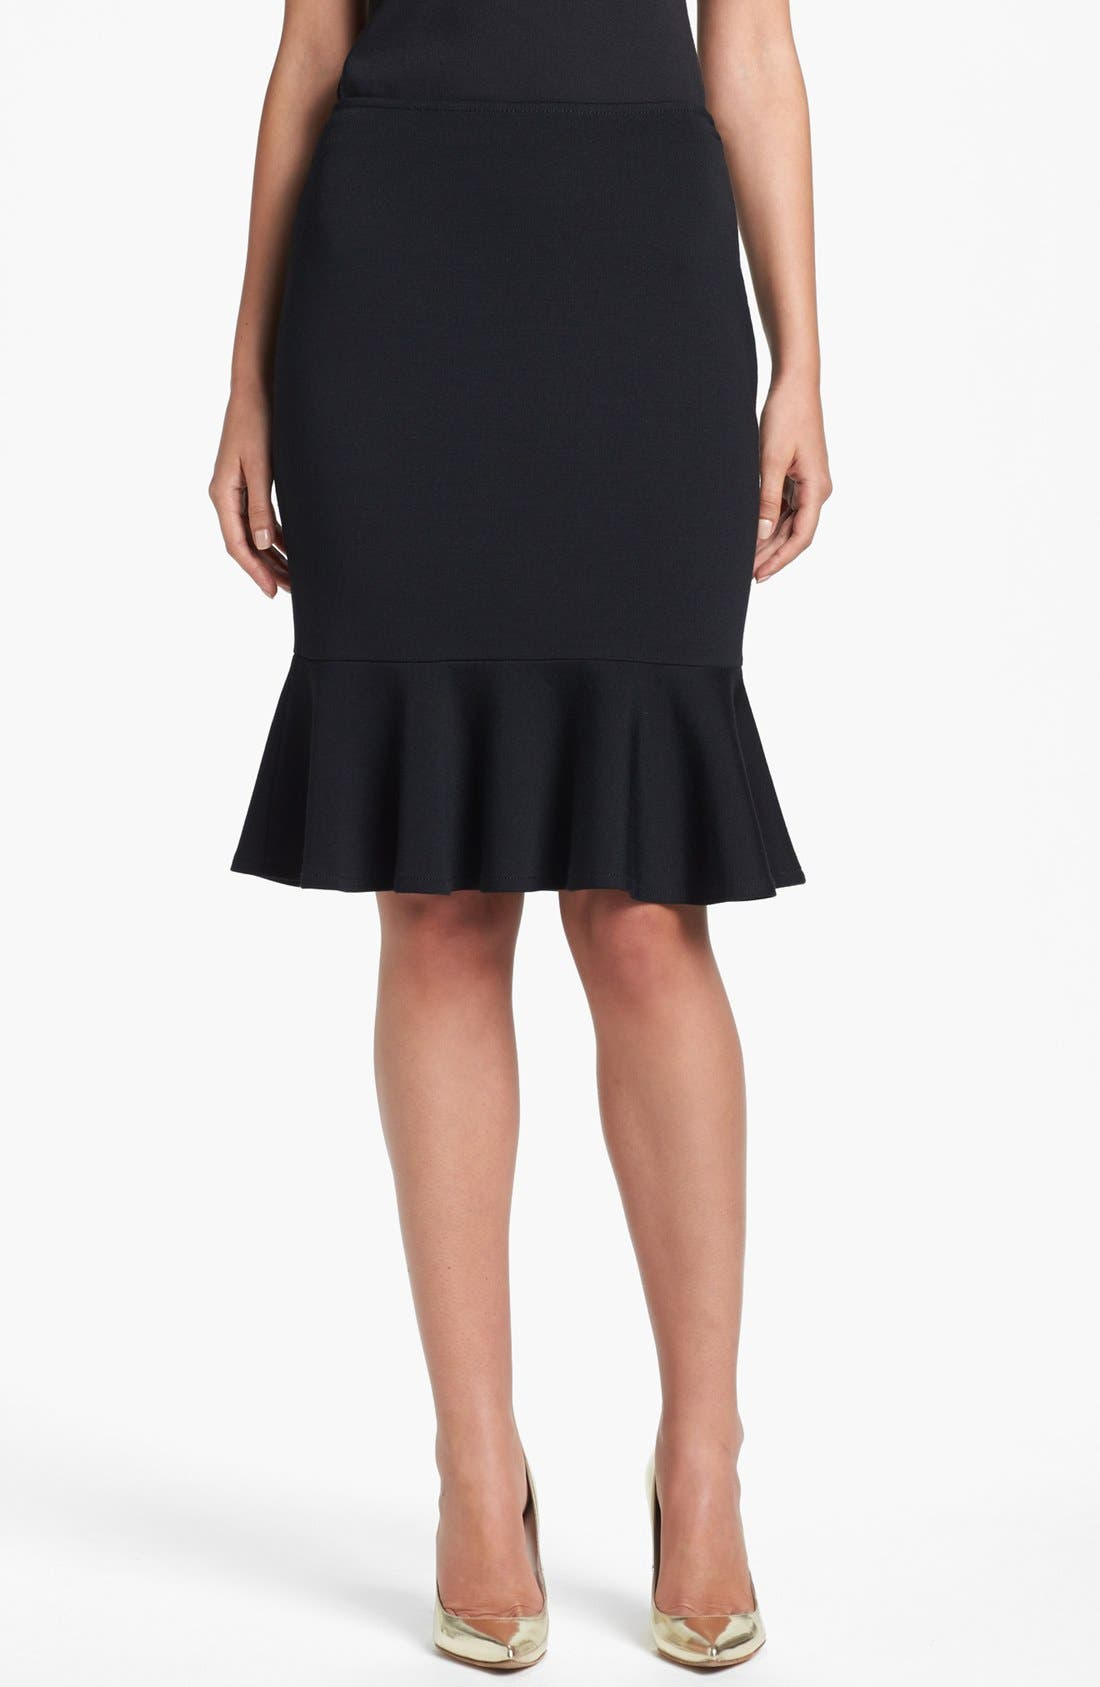 Alternate Image 1 Selected - St. John Collection Flounce Hem Milano Knit Pencil Skirt